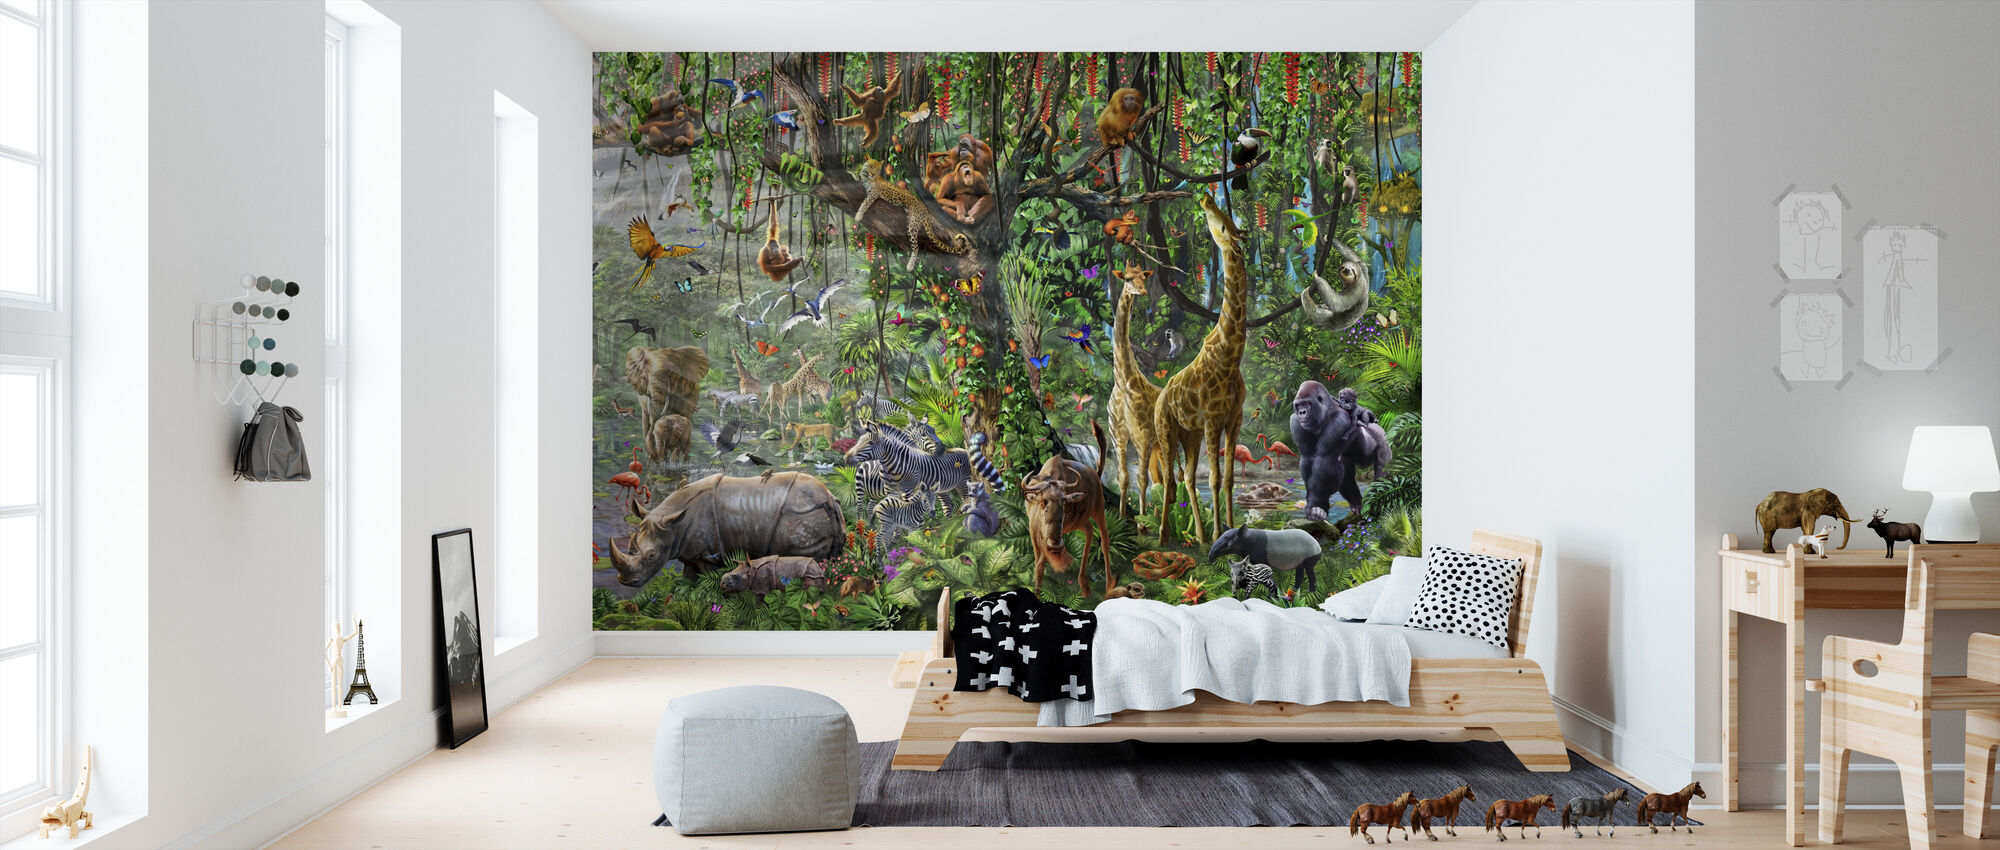 African Mural Panorama - Wallpaper - Kids Room